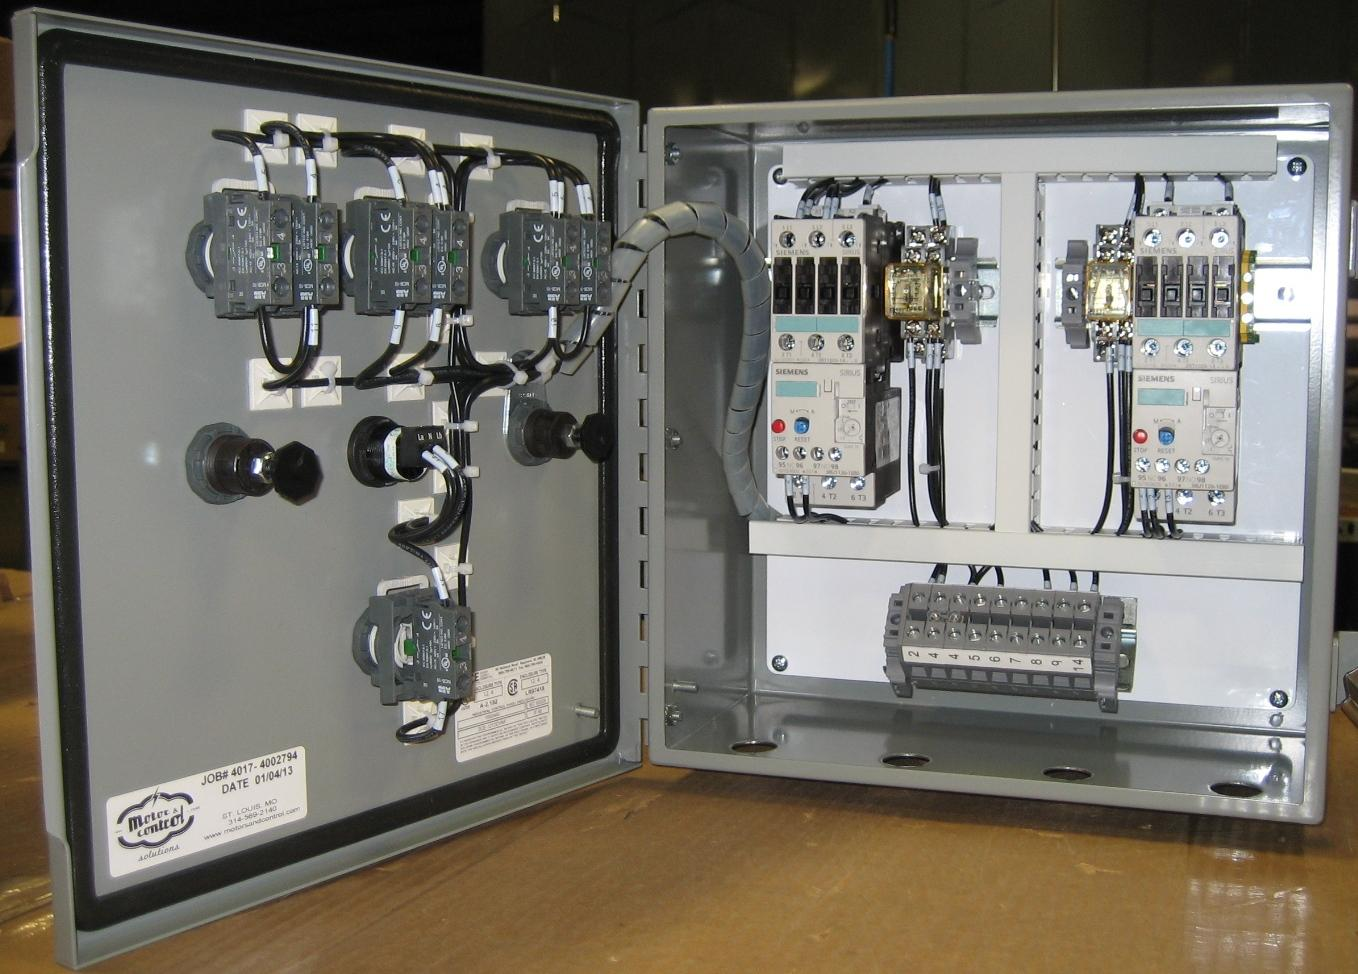 175 custom pump control panel experts fast, free quotes duplex pump control panel wiring diagram at gsmportal.co